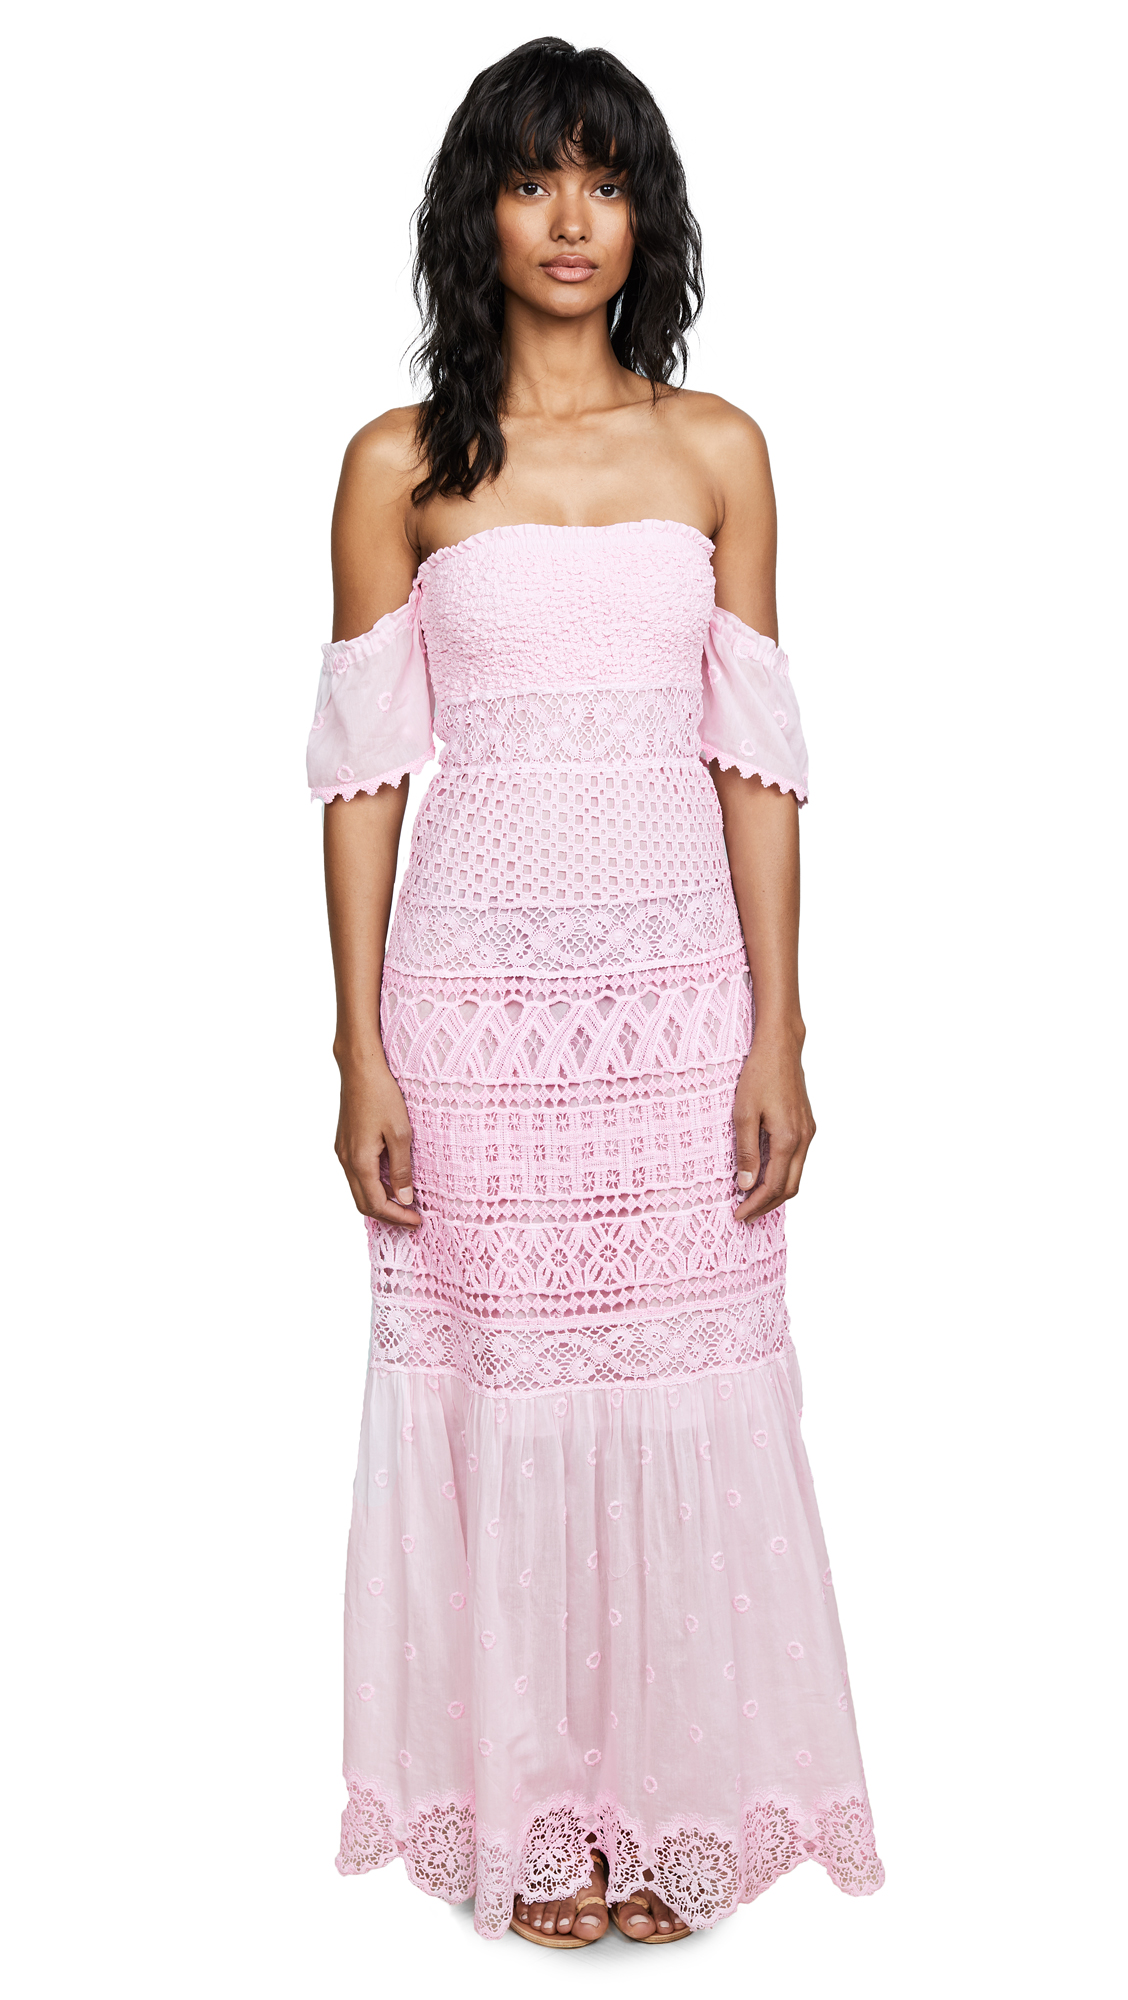 TEMPTATION POSITANO BORA BORA DRESS